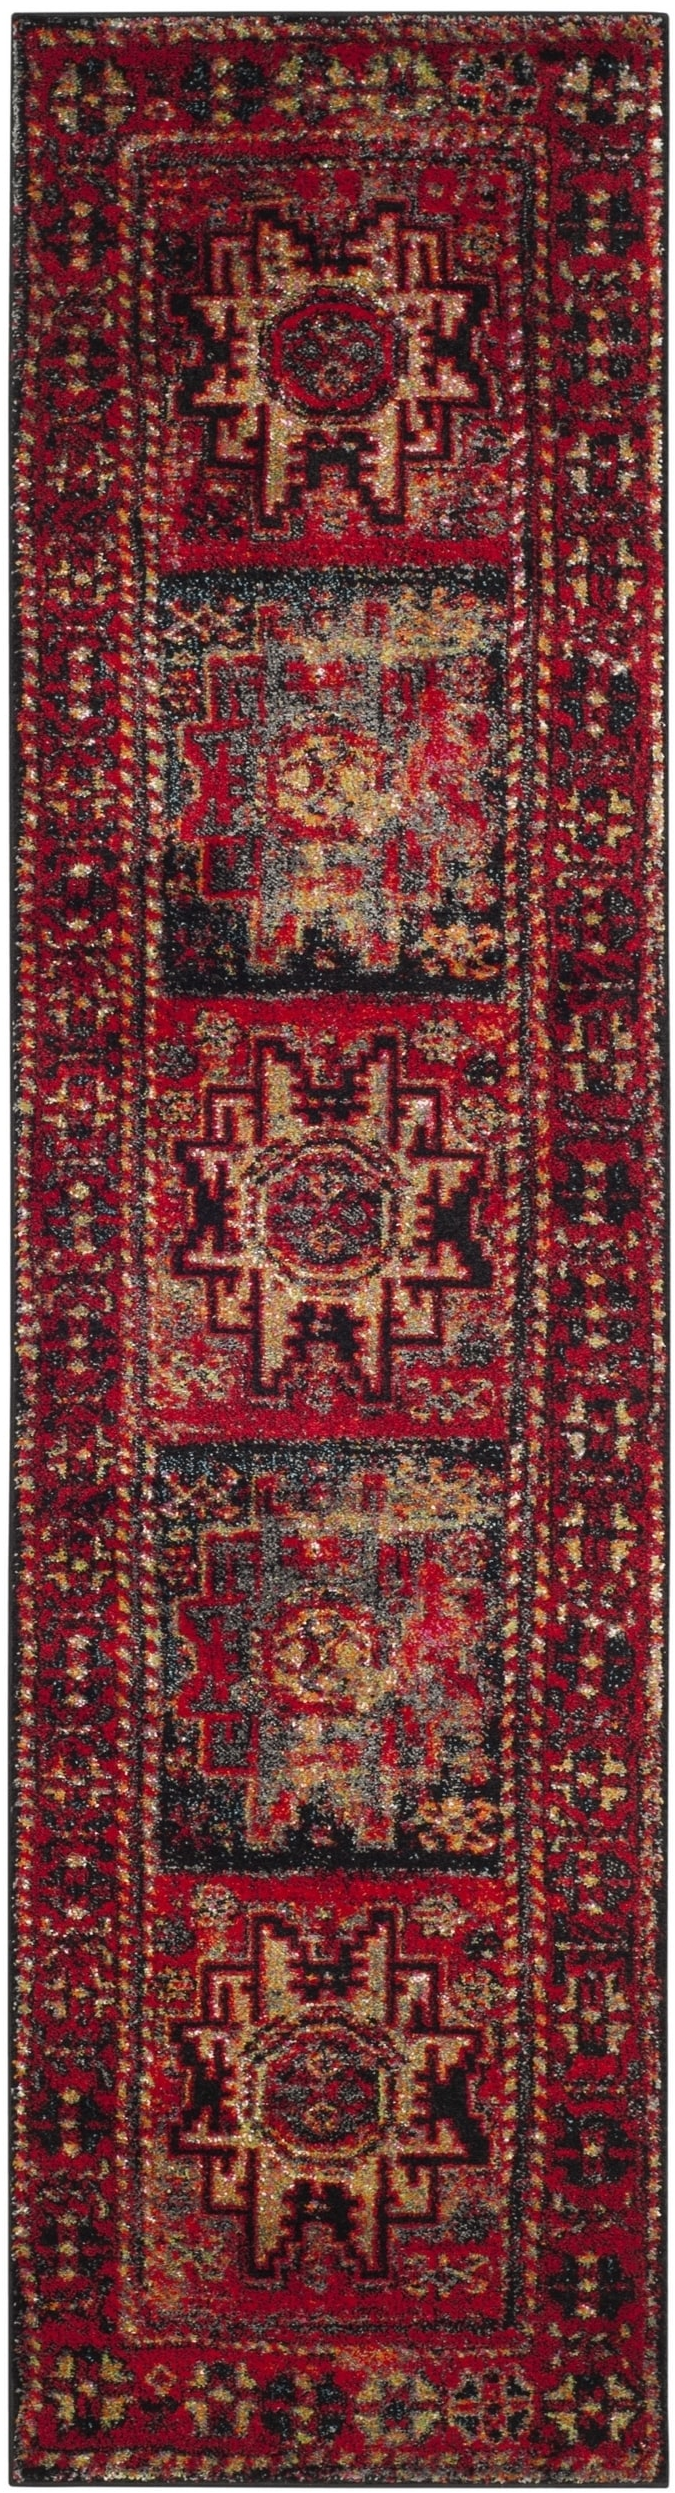 Safavieh Vintage Hamadan Traditional Red/ Multi Distressed Runner (2'2 x 6') - Free Shipping On Orders Over $45 - Overstock.com - 20791461